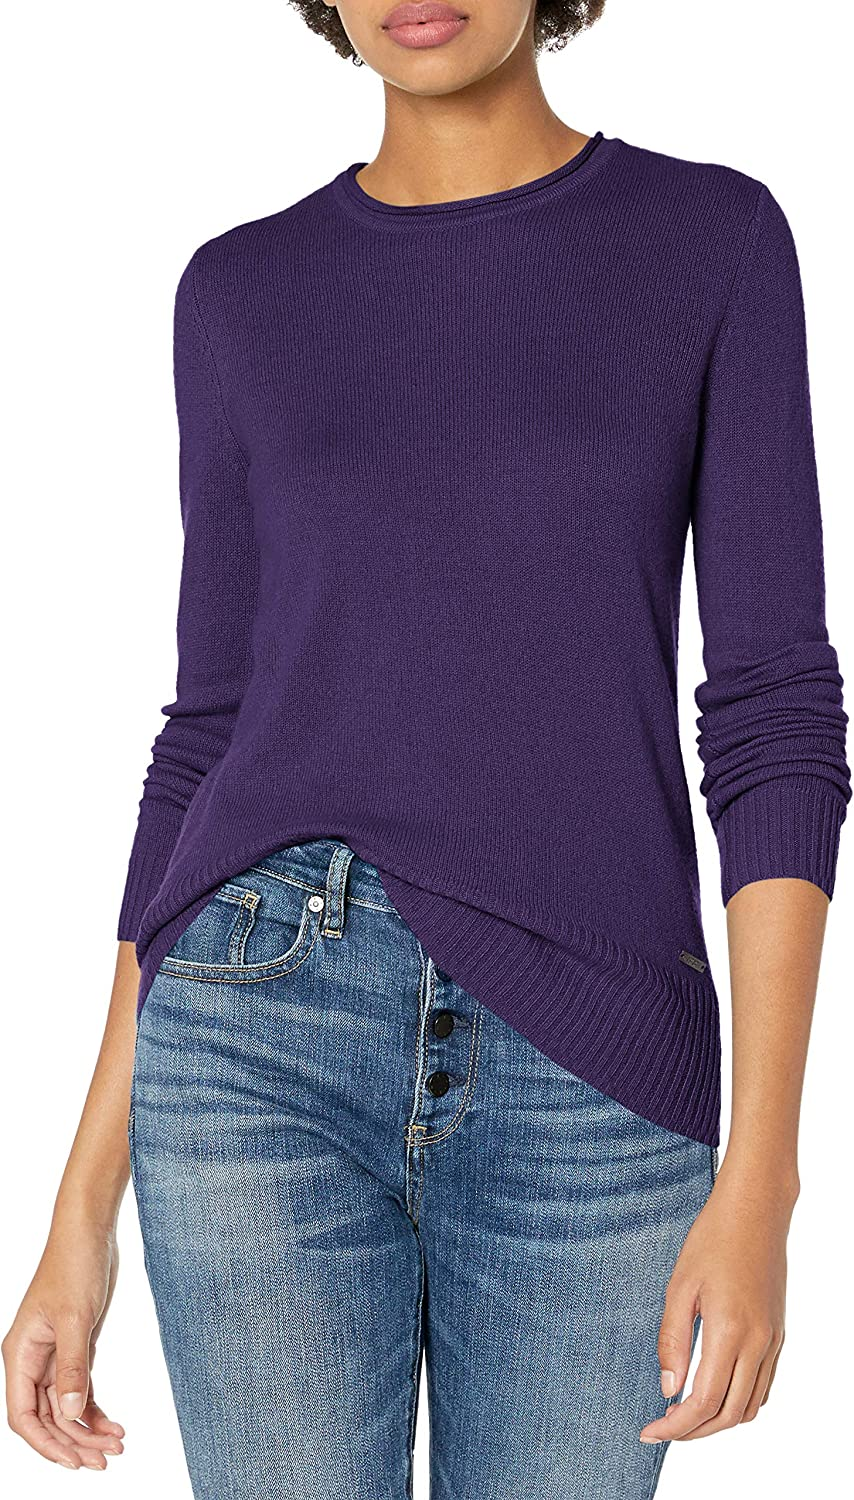 AX Armani Exchange Women's Long Sleeve Solid Crew Neck Pullover